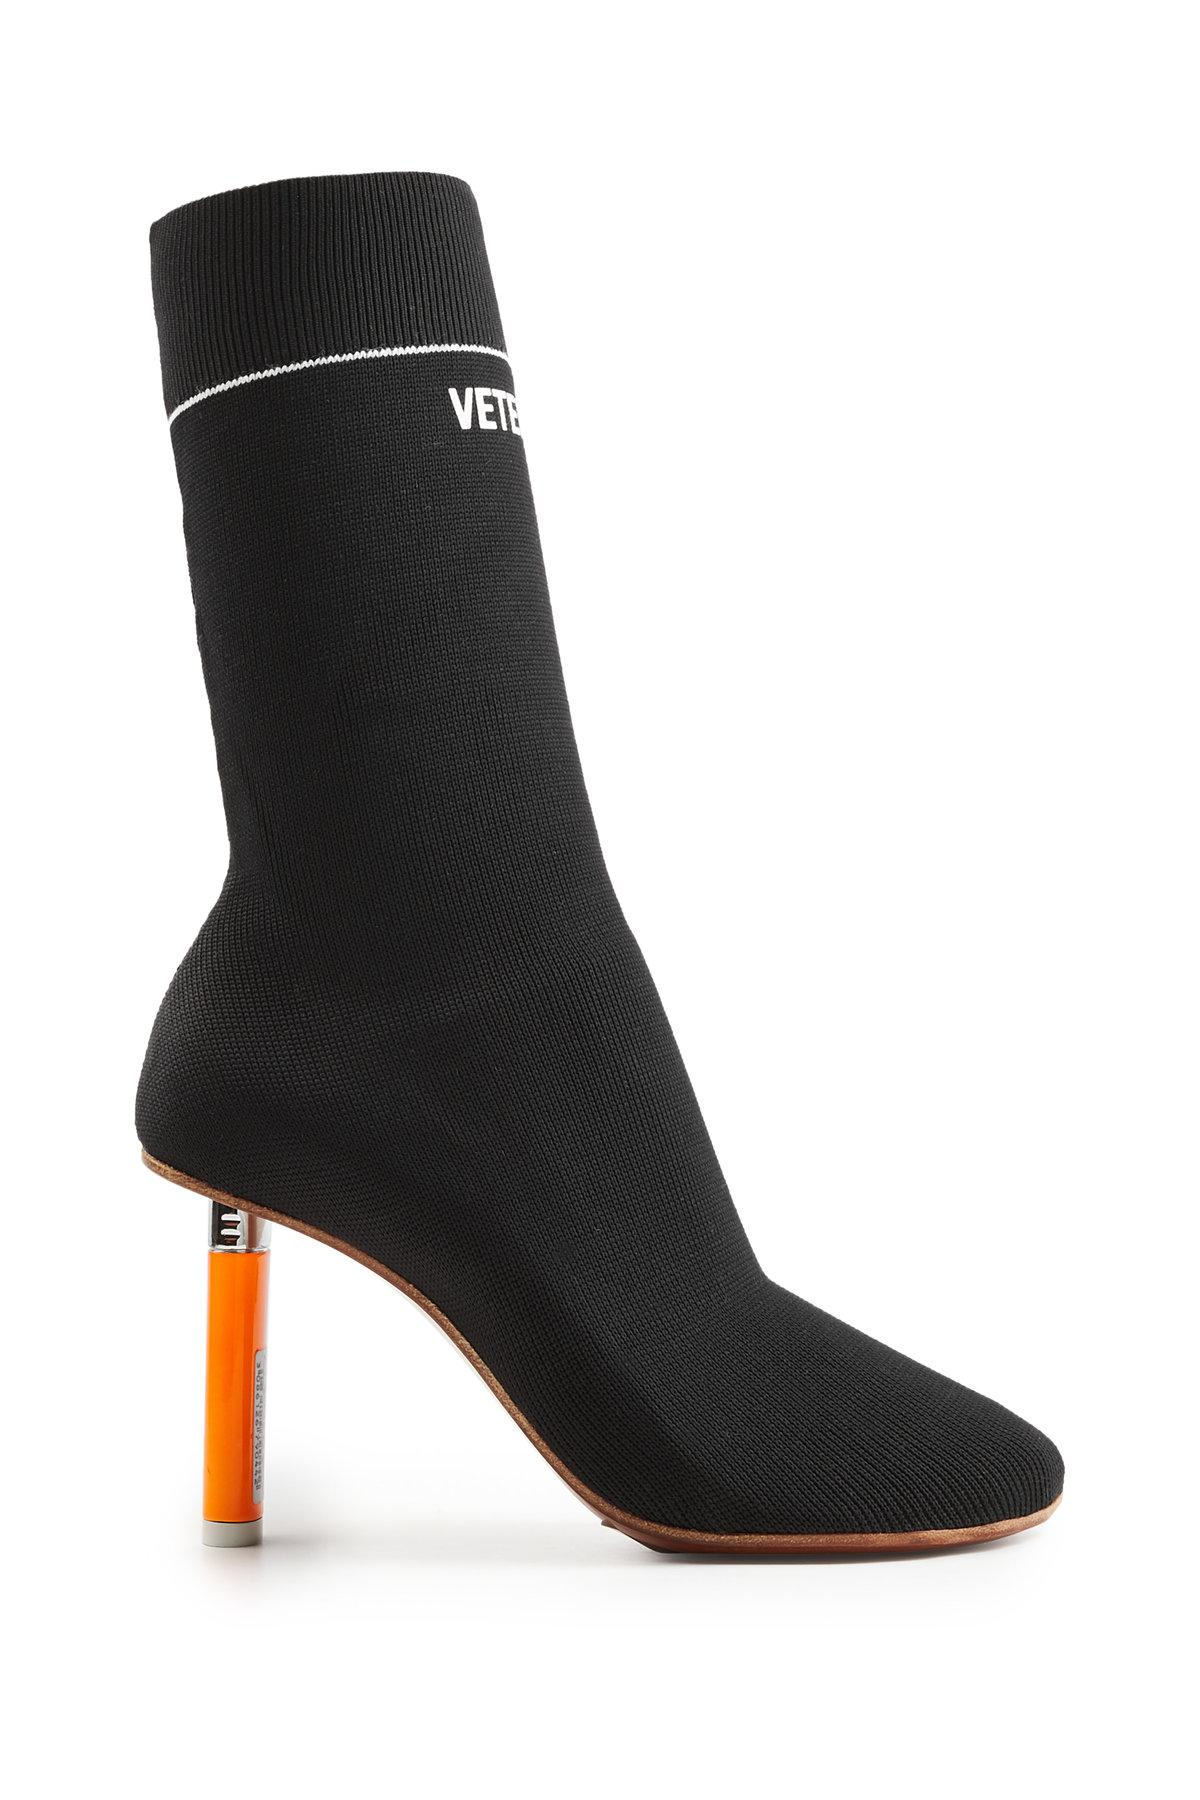 Lyst Vetements Sock Ankle Boots In Black